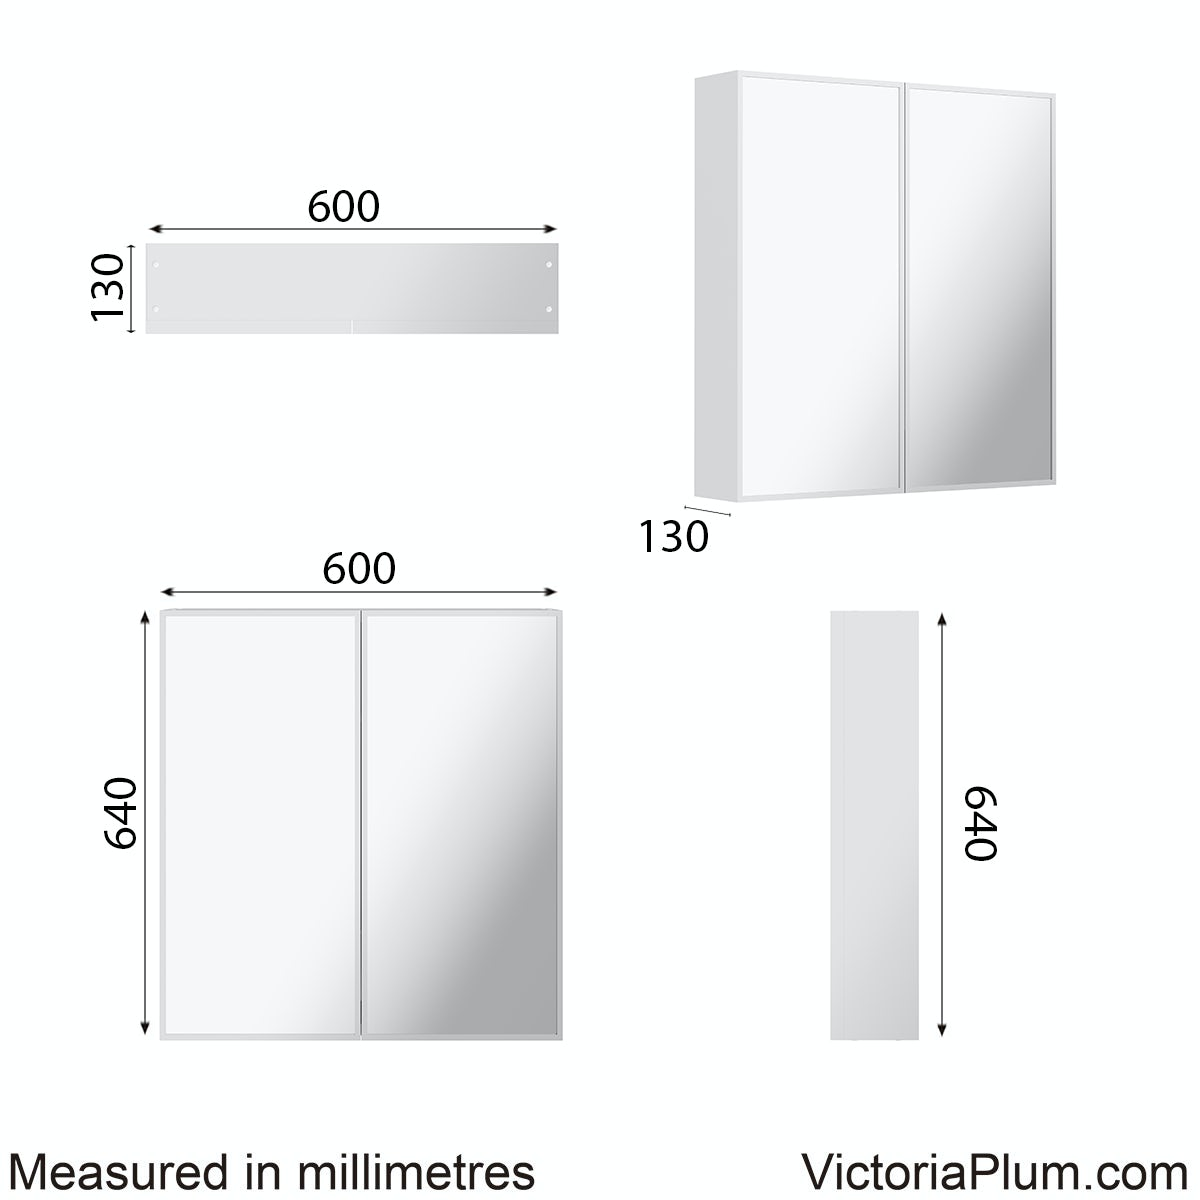 Dimensions for Mode Breuer mirror cabinet 640 x 600